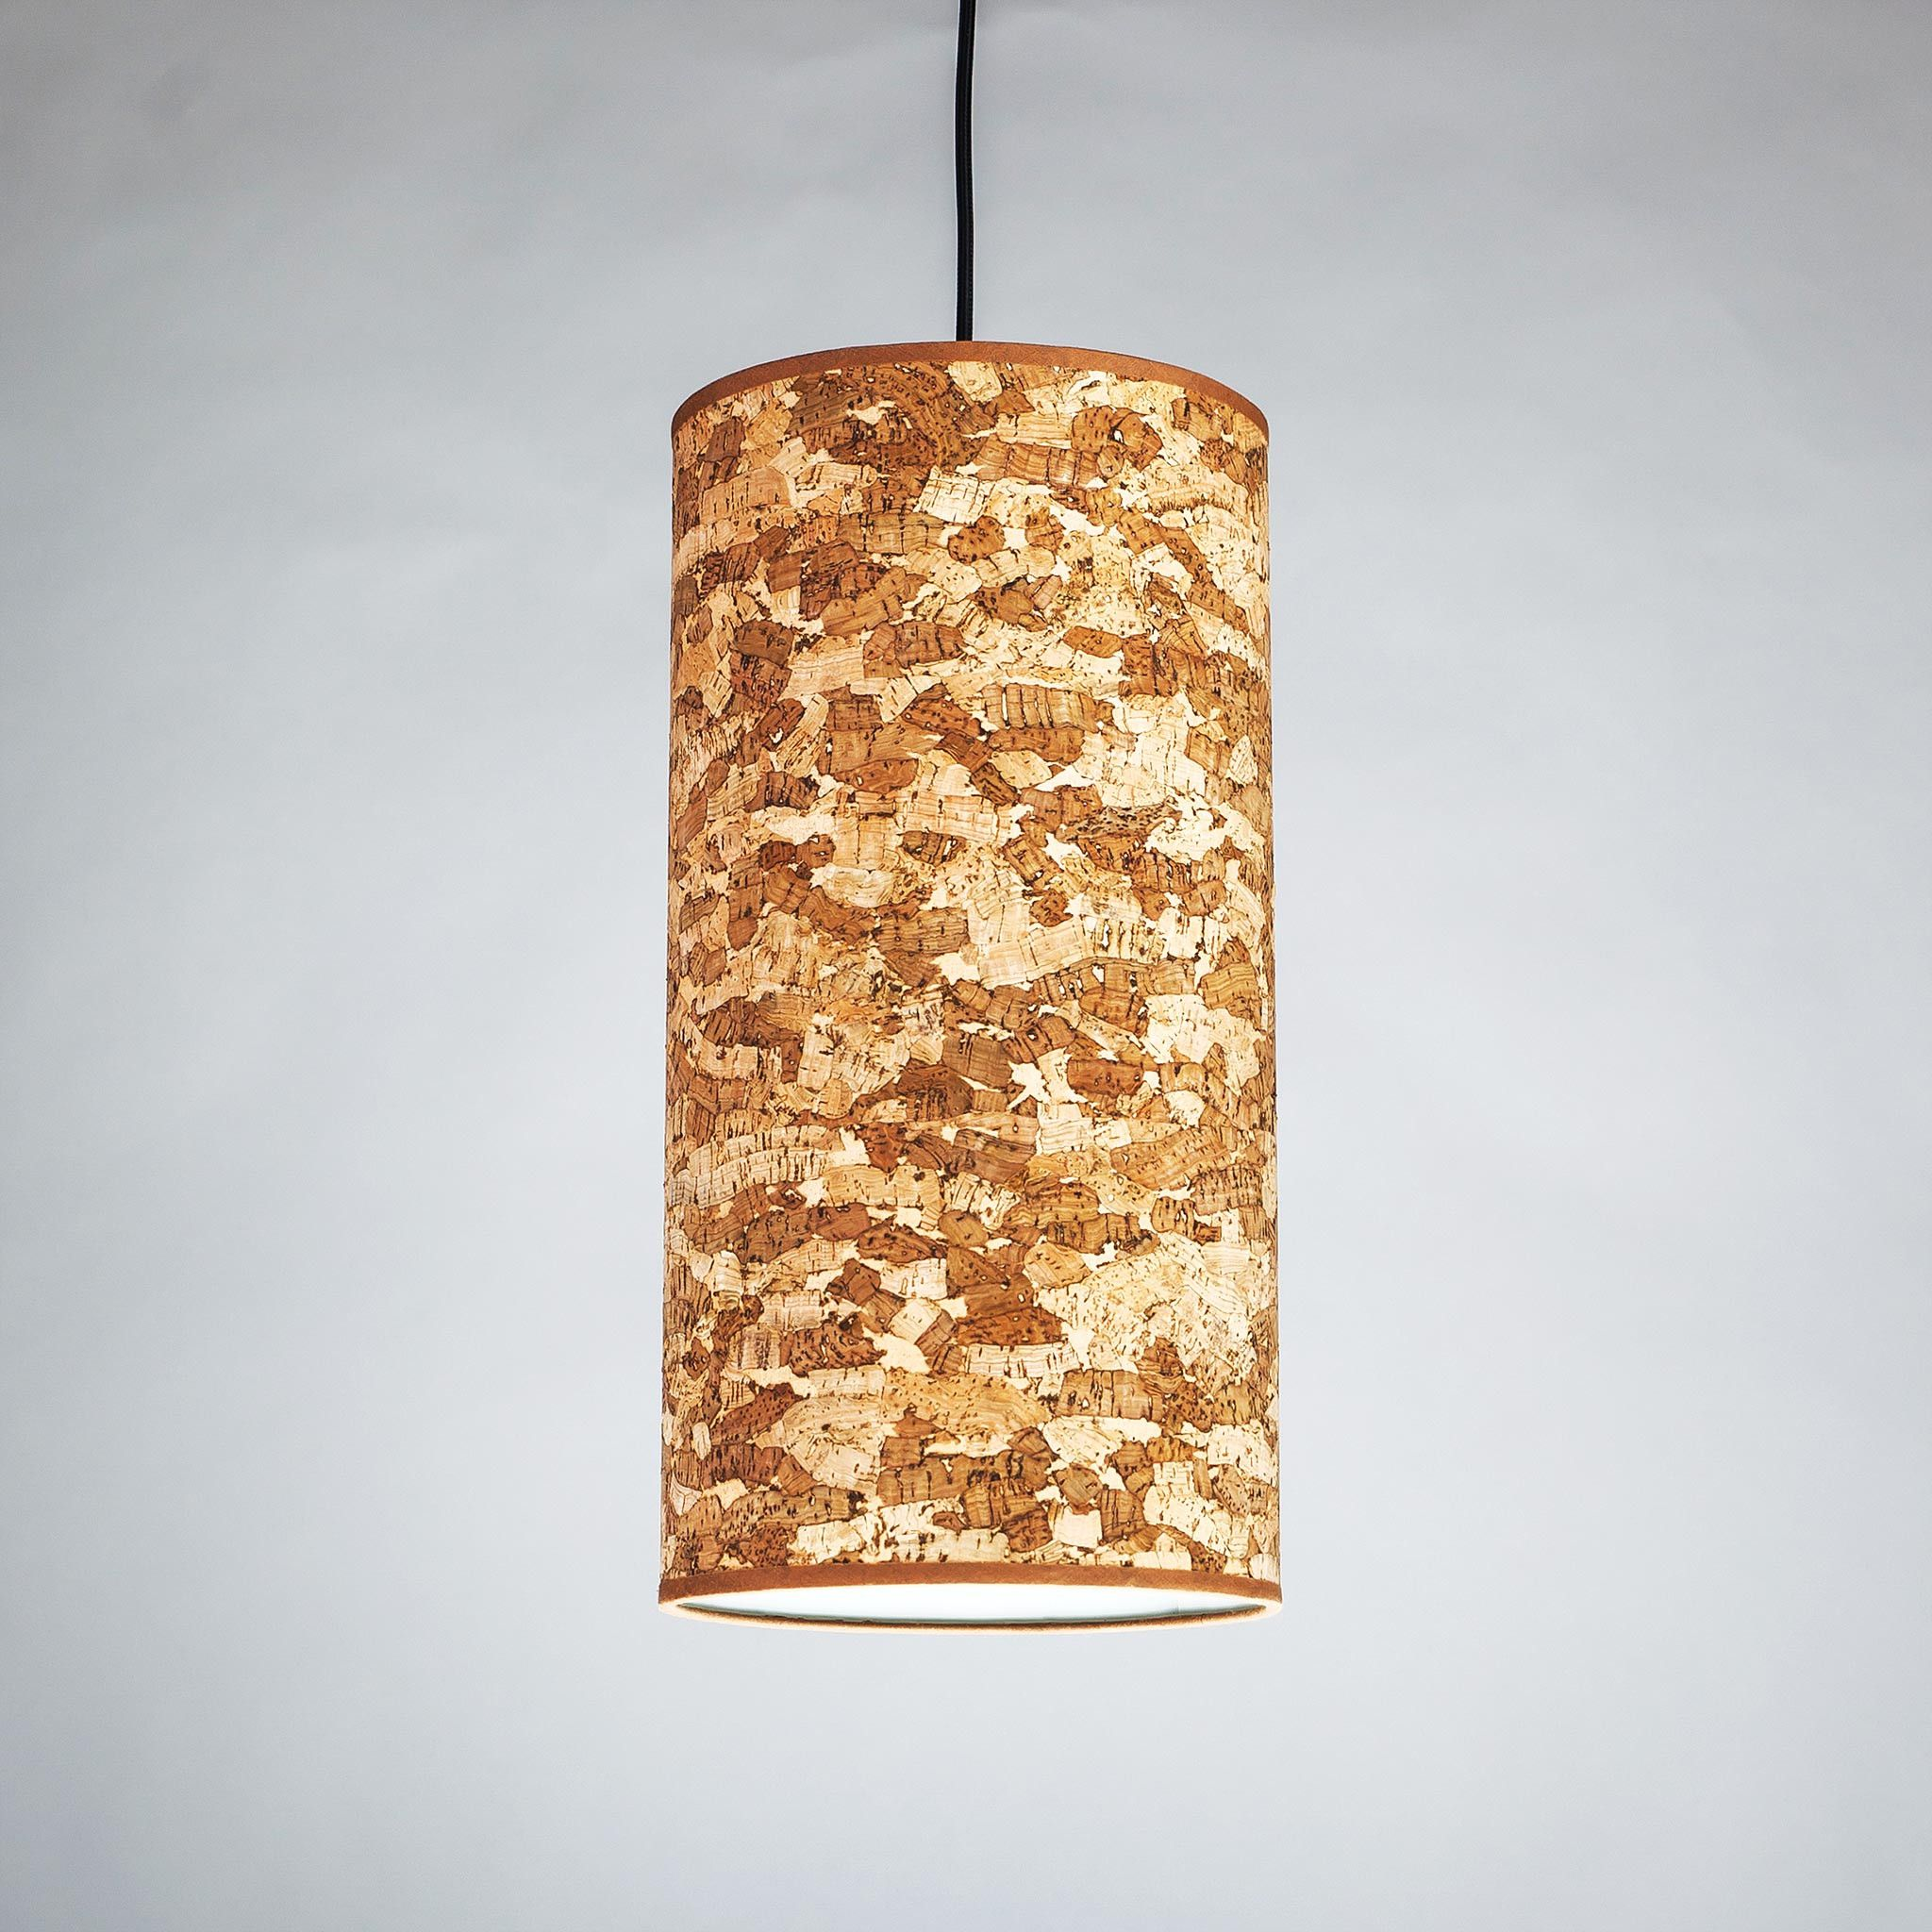 Cork natural lamp shade small by innermost funky lamp shades cork natural lamp shade small by innermost funky lamp shades aloadofball Gallery